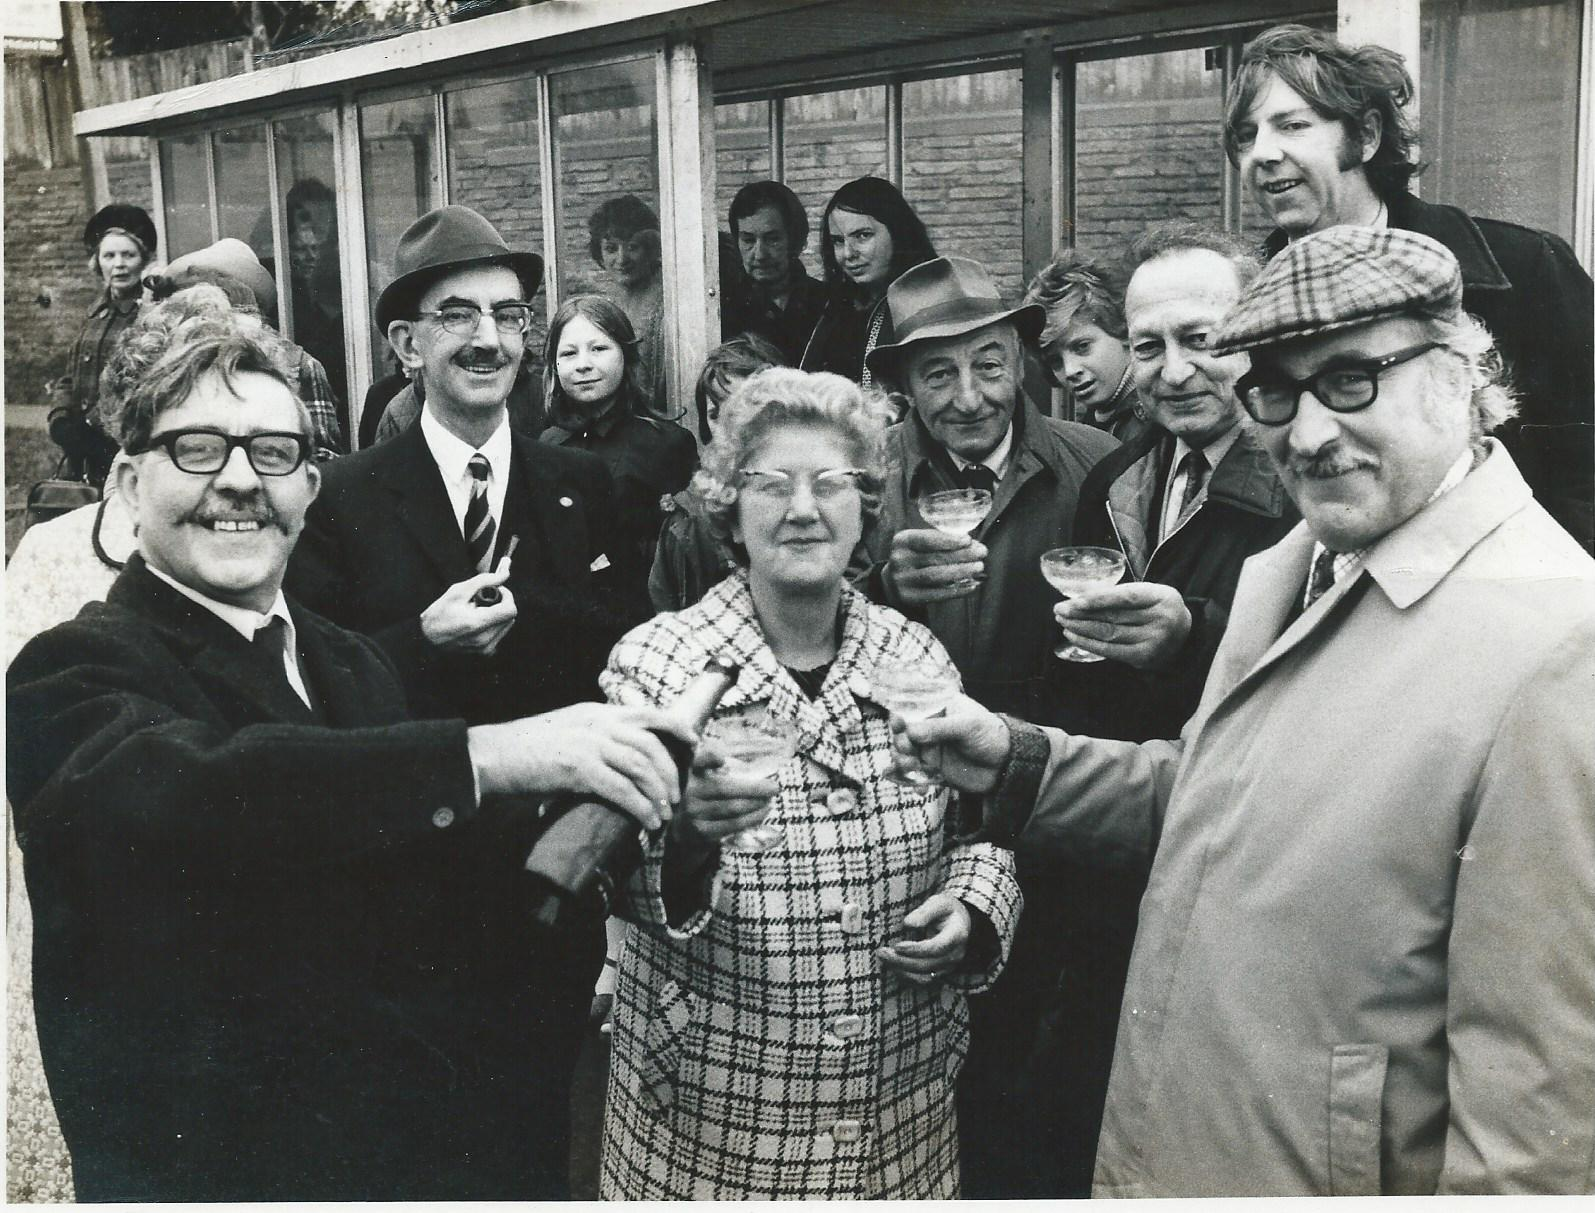 A momentous occasion in the history of Romsley and Hunnington Parish Councils with the opening of the Bus Shelter outside the Sun Inn, on 21st, December, 1974... Submitted by John Lowe